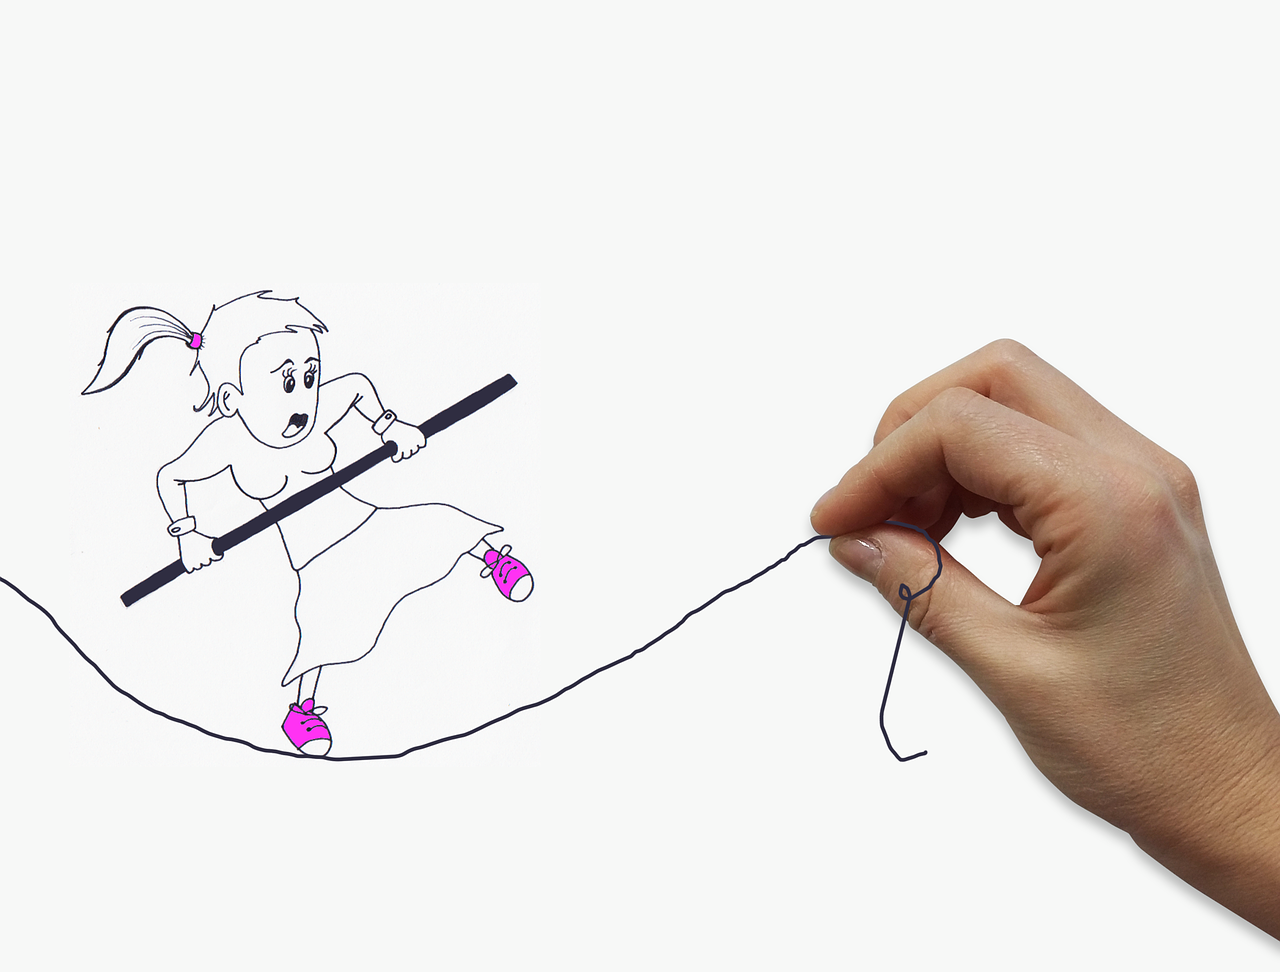 A fearful woman (illustration) walking on a loose wire held by a real woman's hand